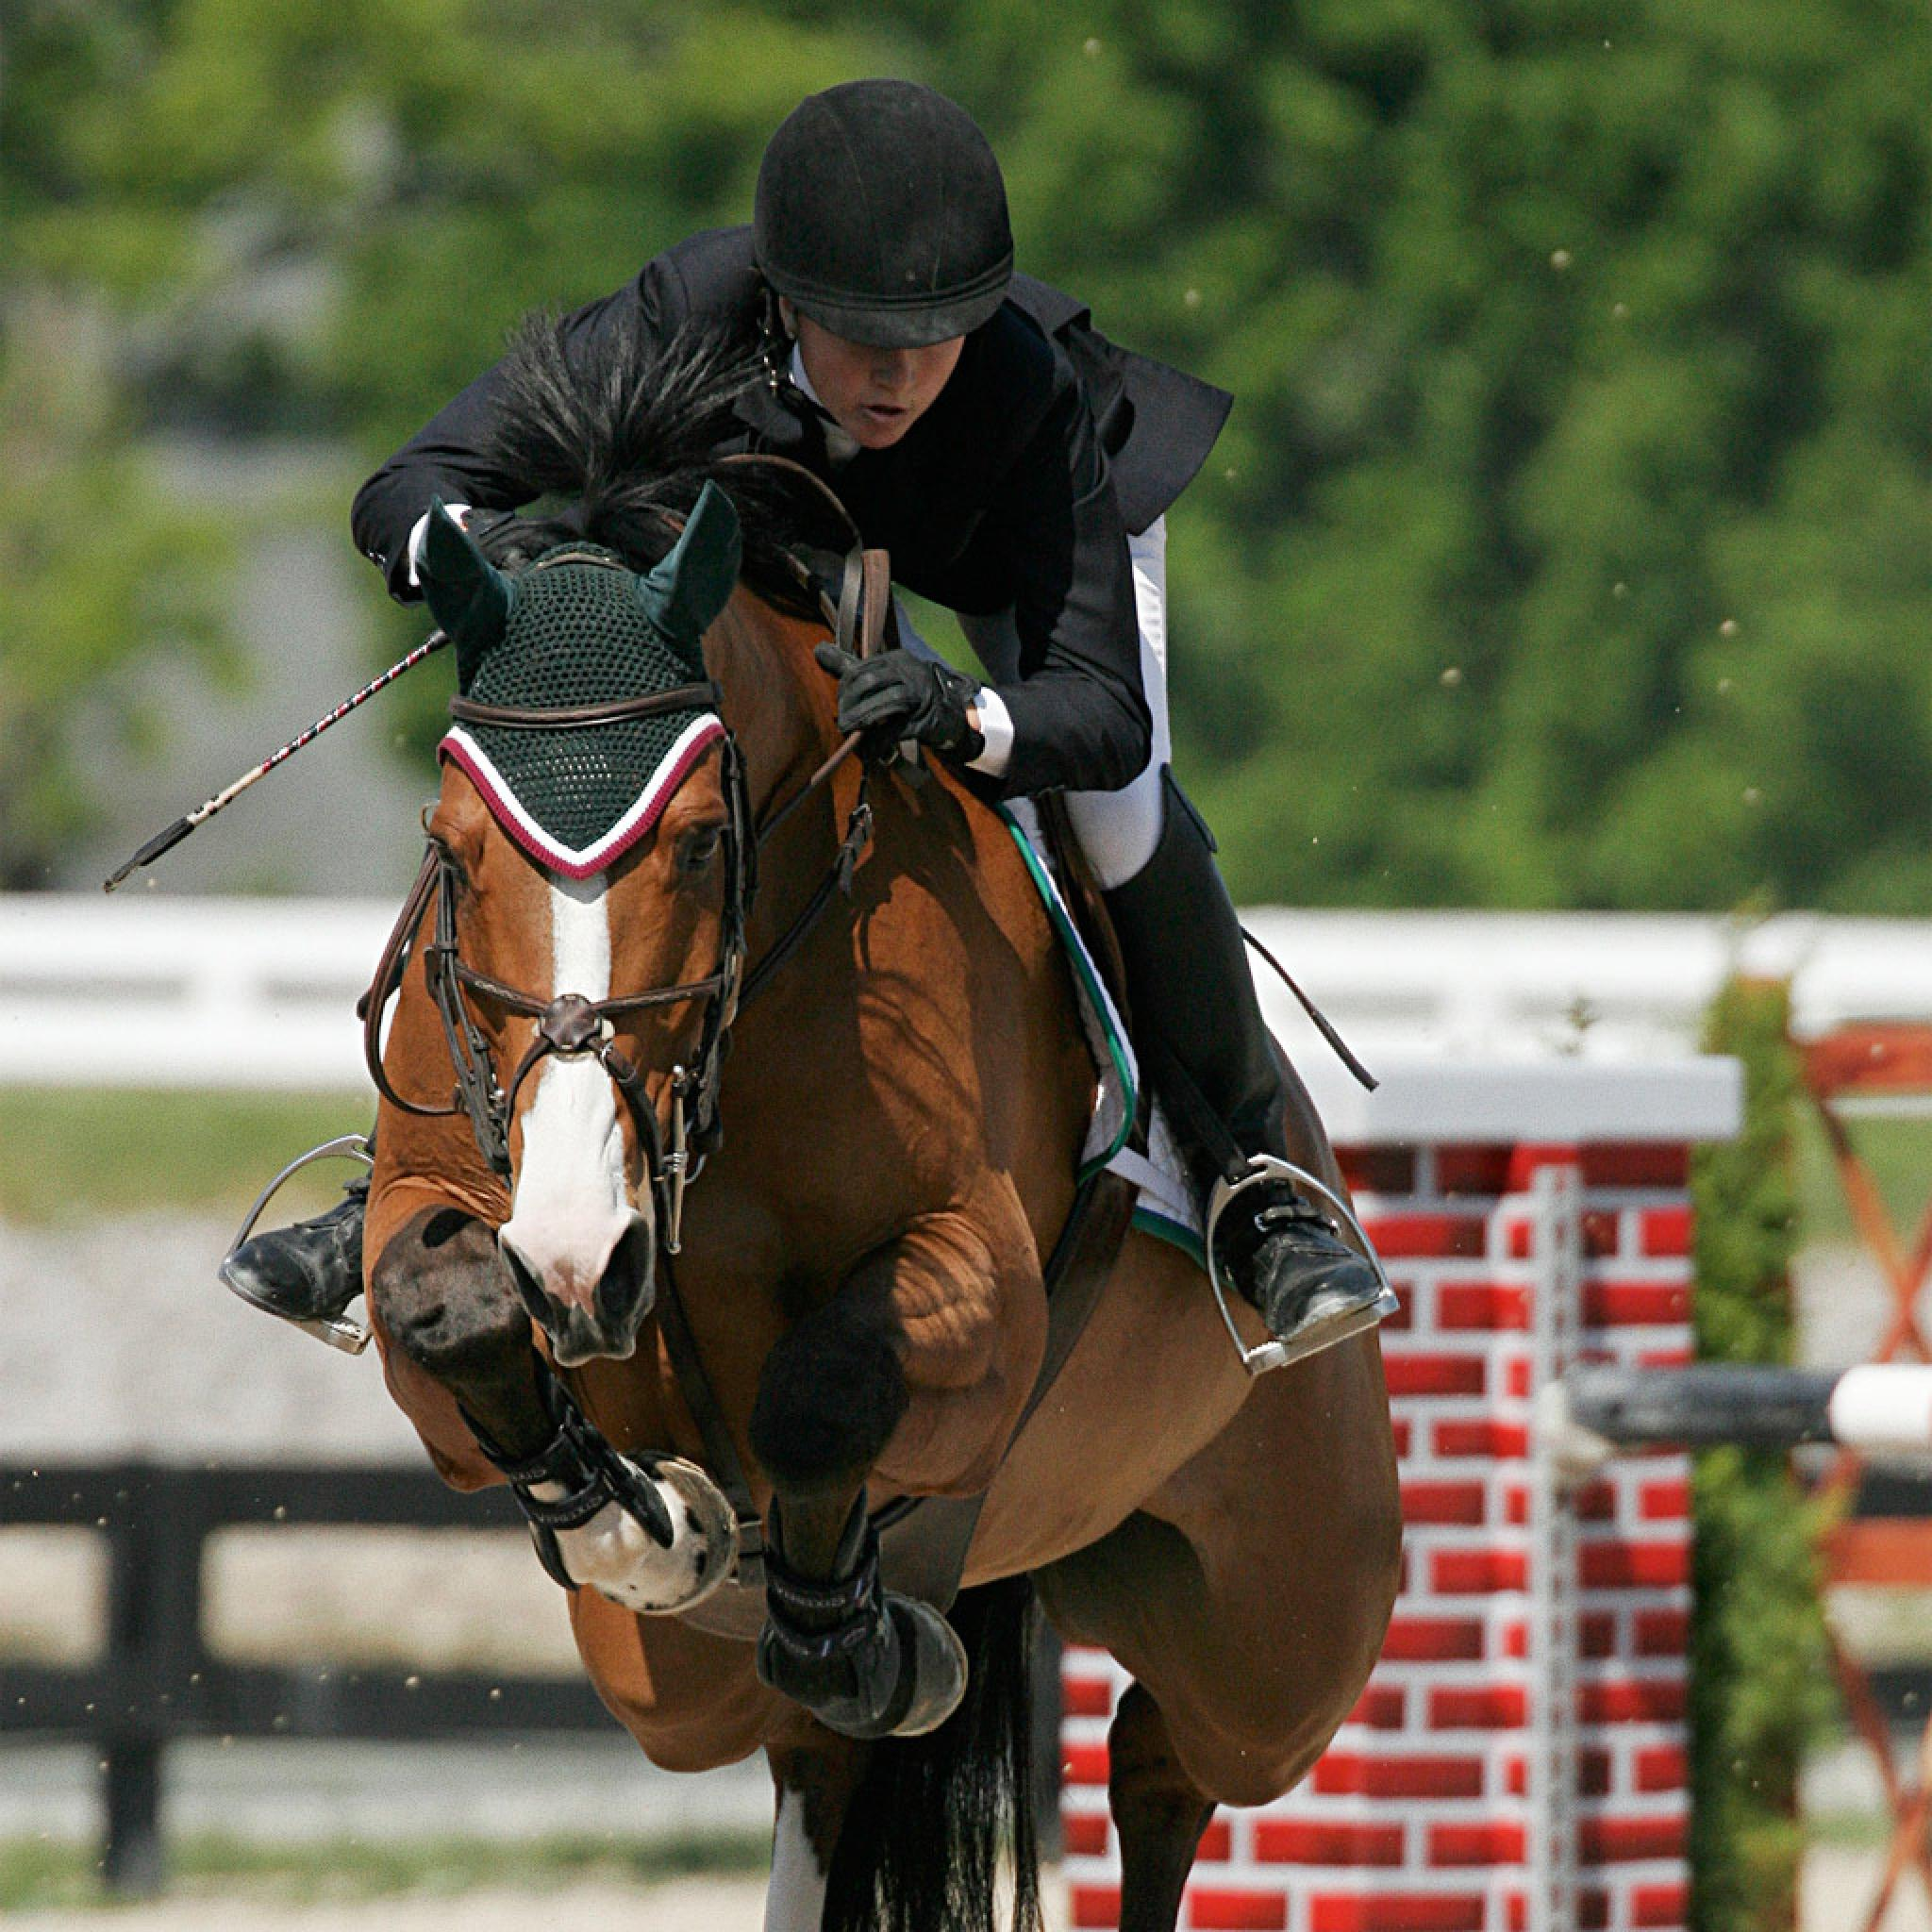 Cute Initial Wallpaper Miscellaneous Horse Riding Show Jumping Ipad Iphone Hd